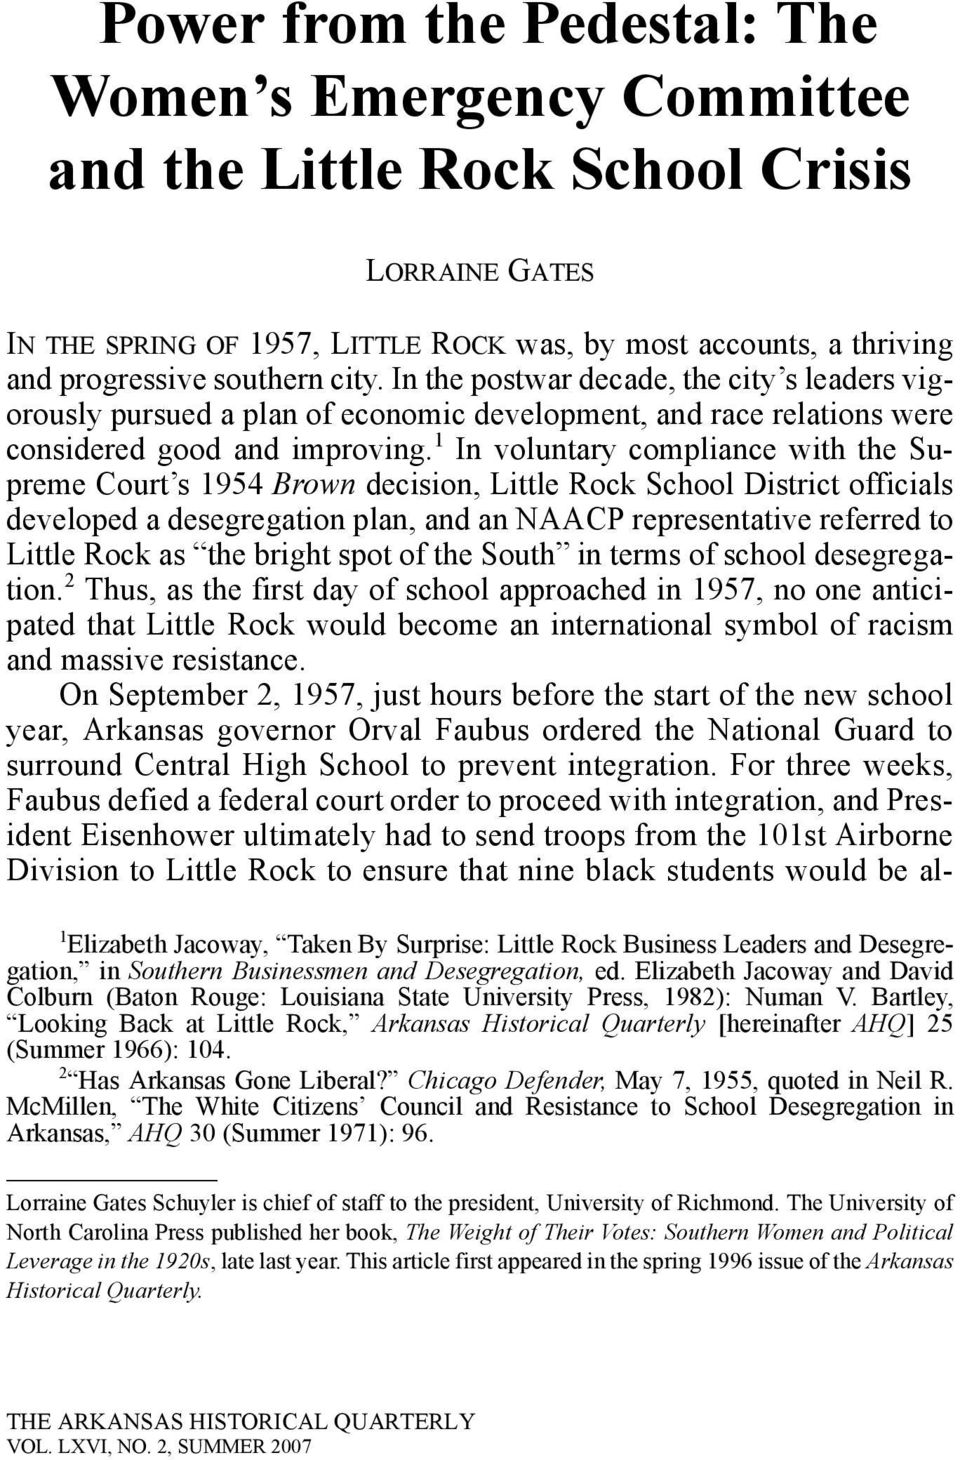 1 In voluntary compliance with the Supreme Court s 1954 Brown decision, Little Rock School District officials developed a desegregation plan, and an NAACP representative referred to Little Rock as